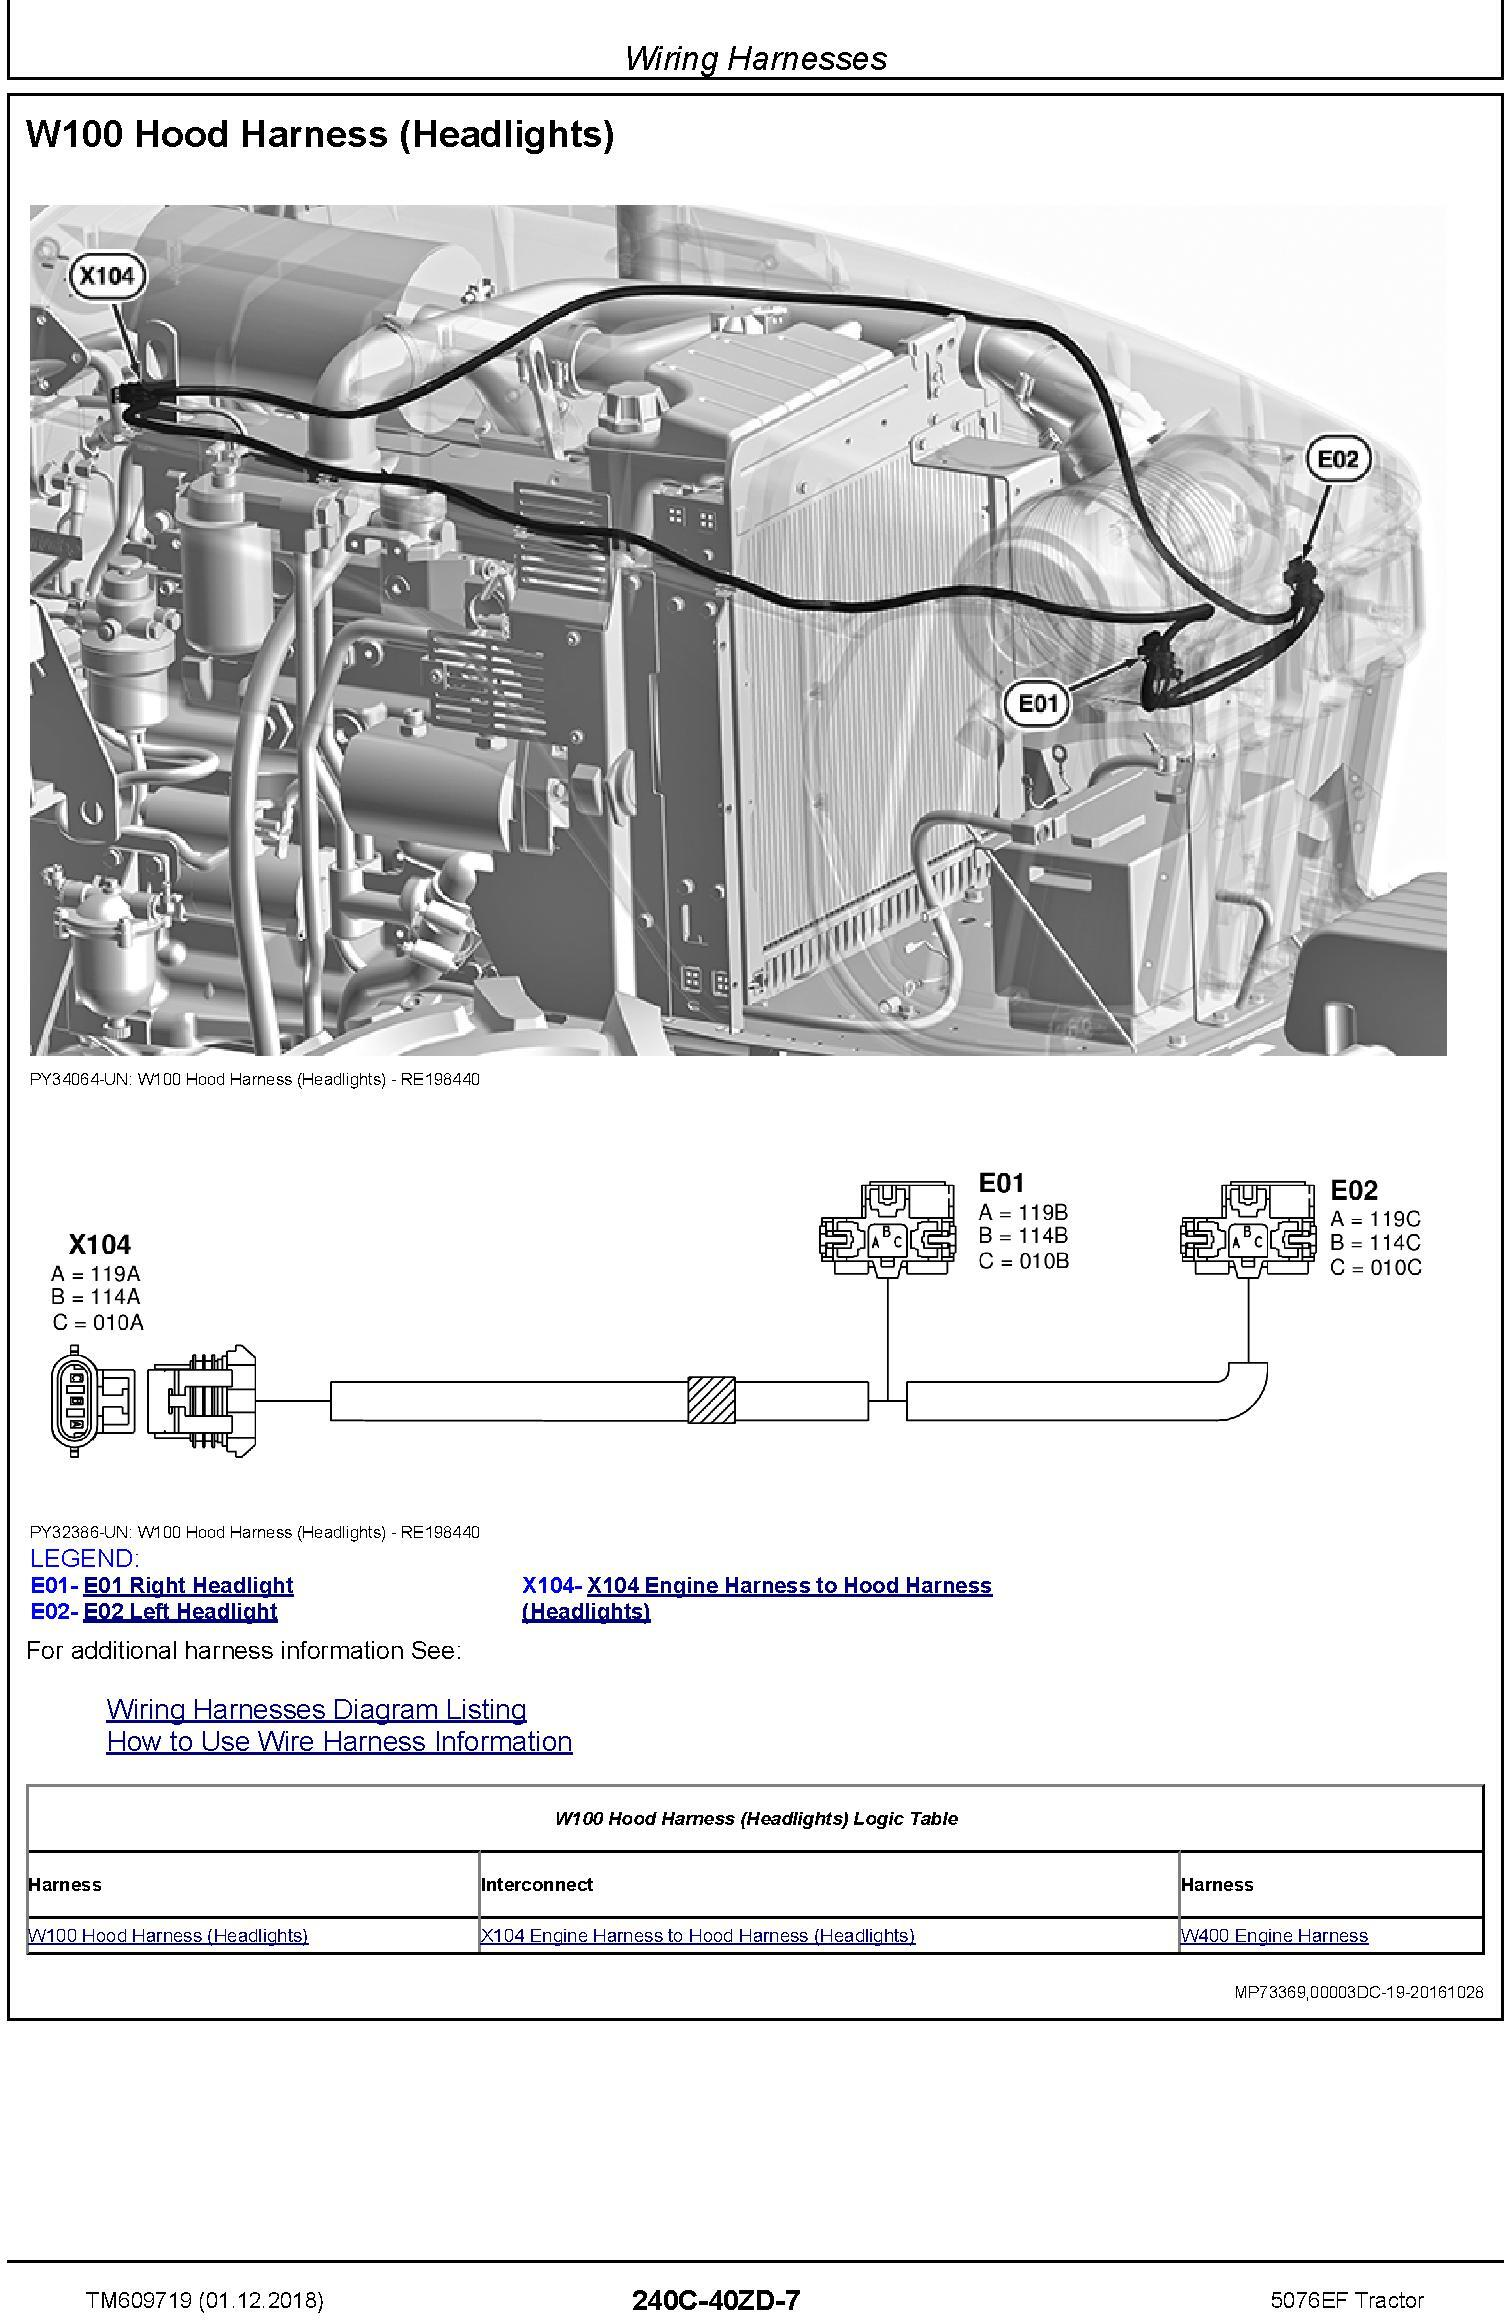 John Deere 5076EF Tractor Diagnostic Technical Service Manual (TM609719) - 1